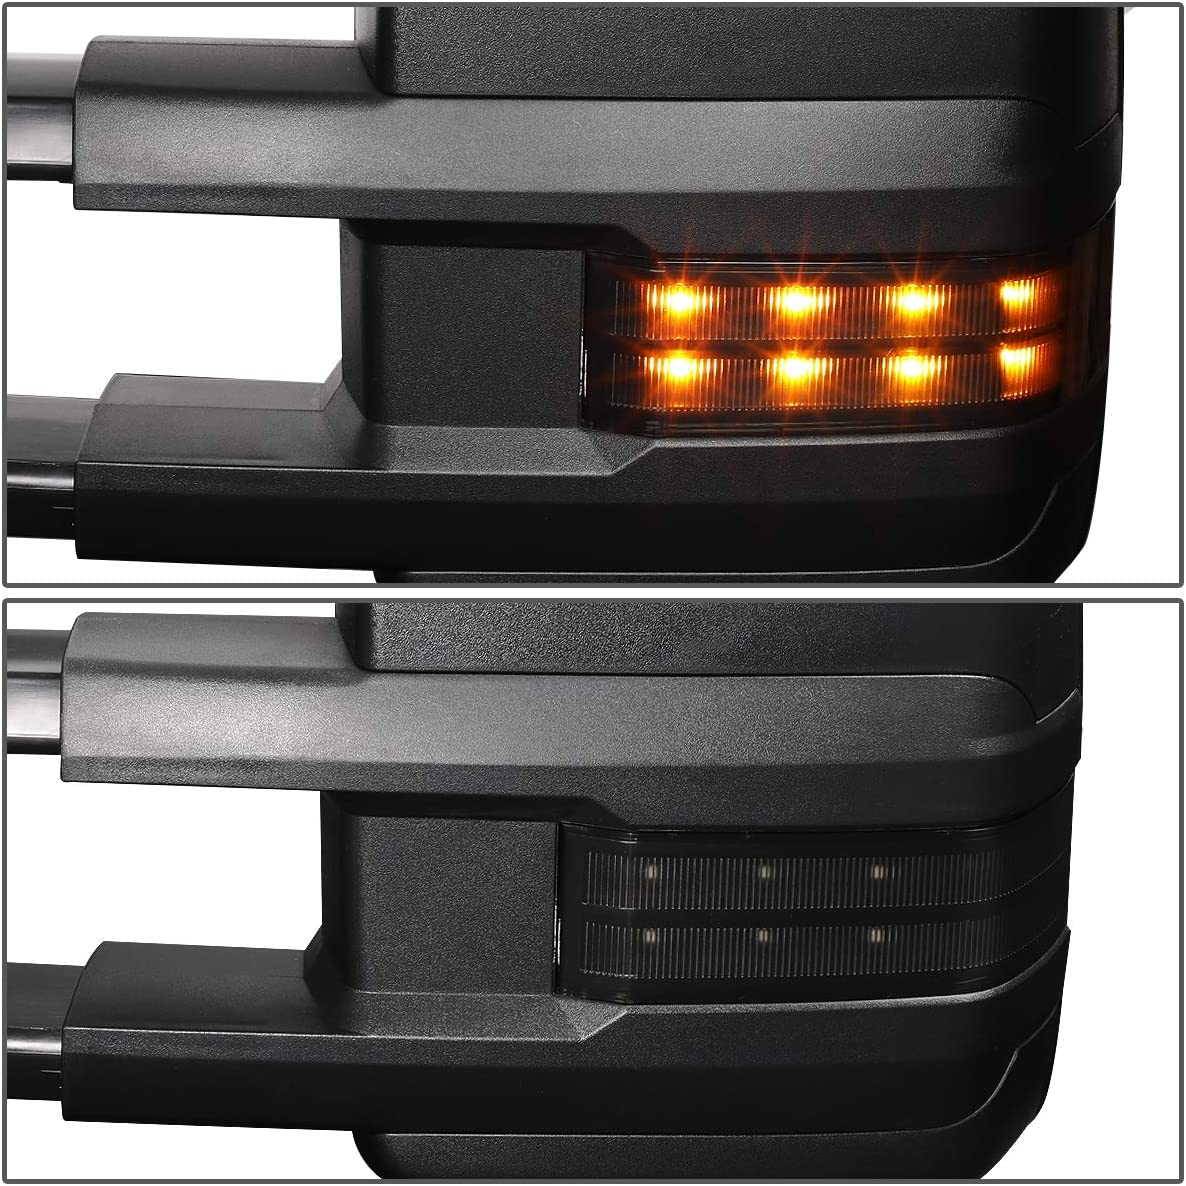 Smoke Left//Driver ,Black DNA MOTORING TWM-030-T888-BK-SM-L Powered+Heated Towing Mirror Set w//LED Turn Signal